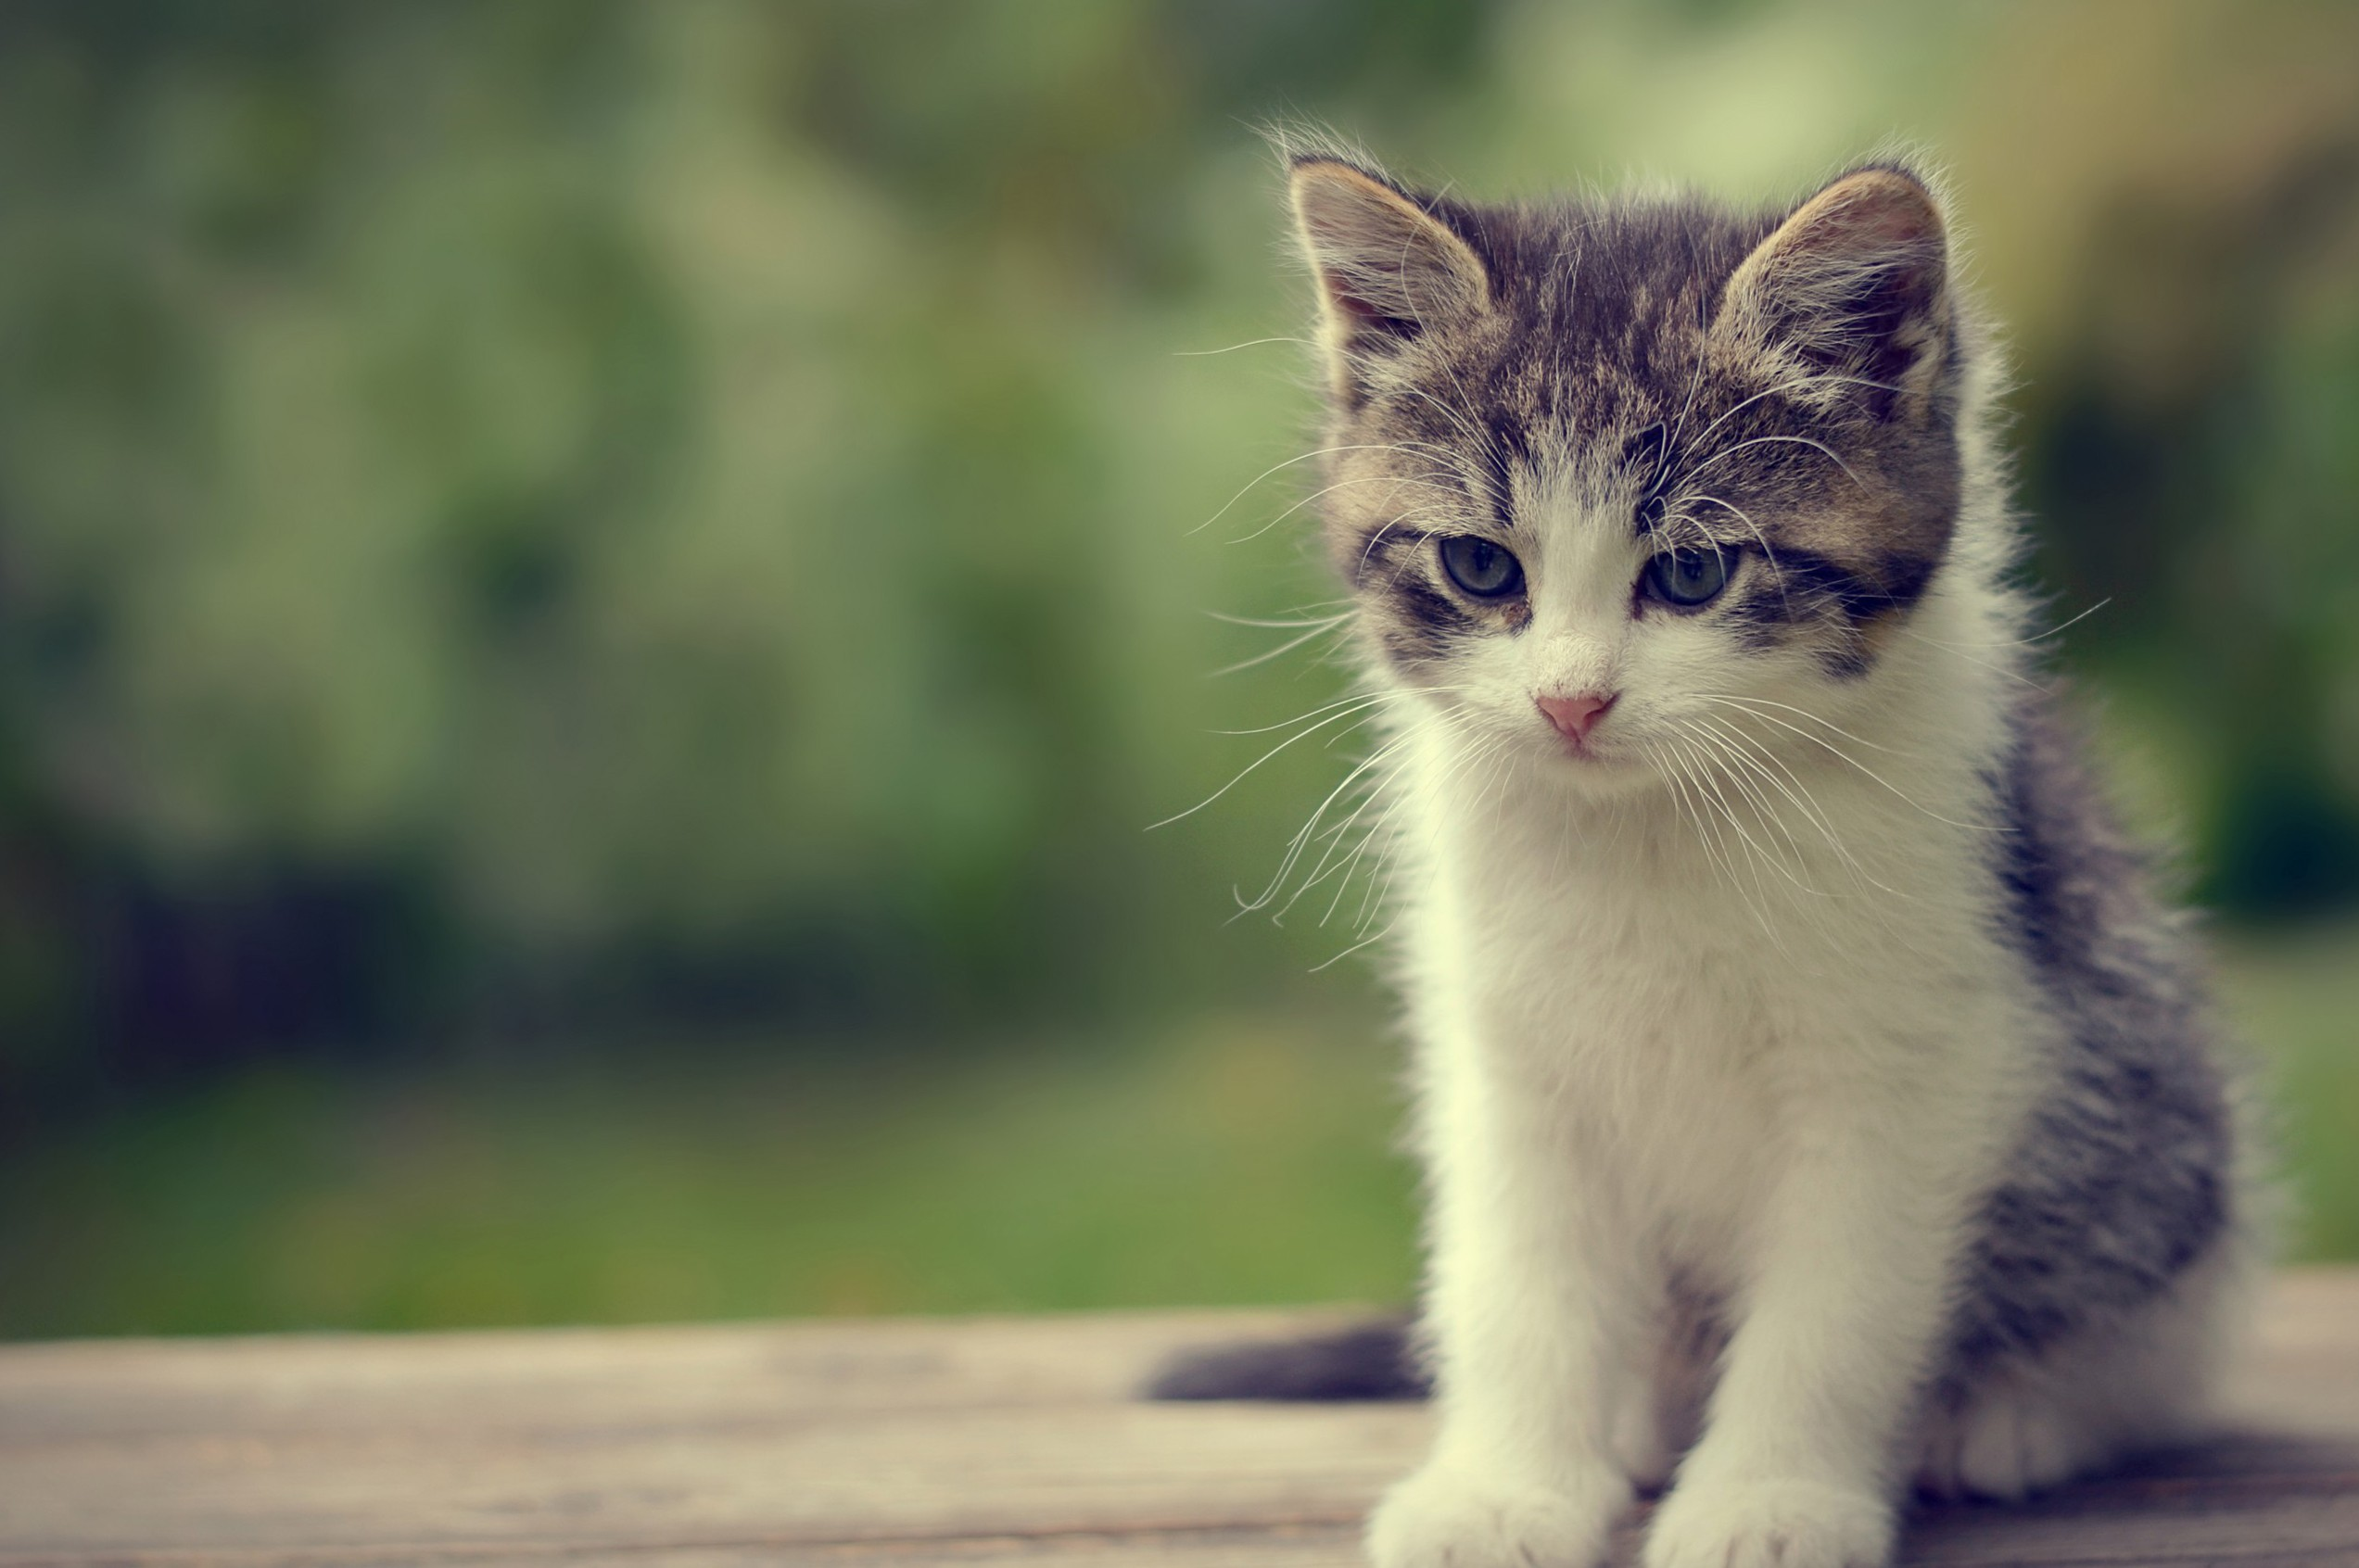 Cute Cat Wallpapers Hd 2545x1692 Download Hd Wallpaper Wallpapertip